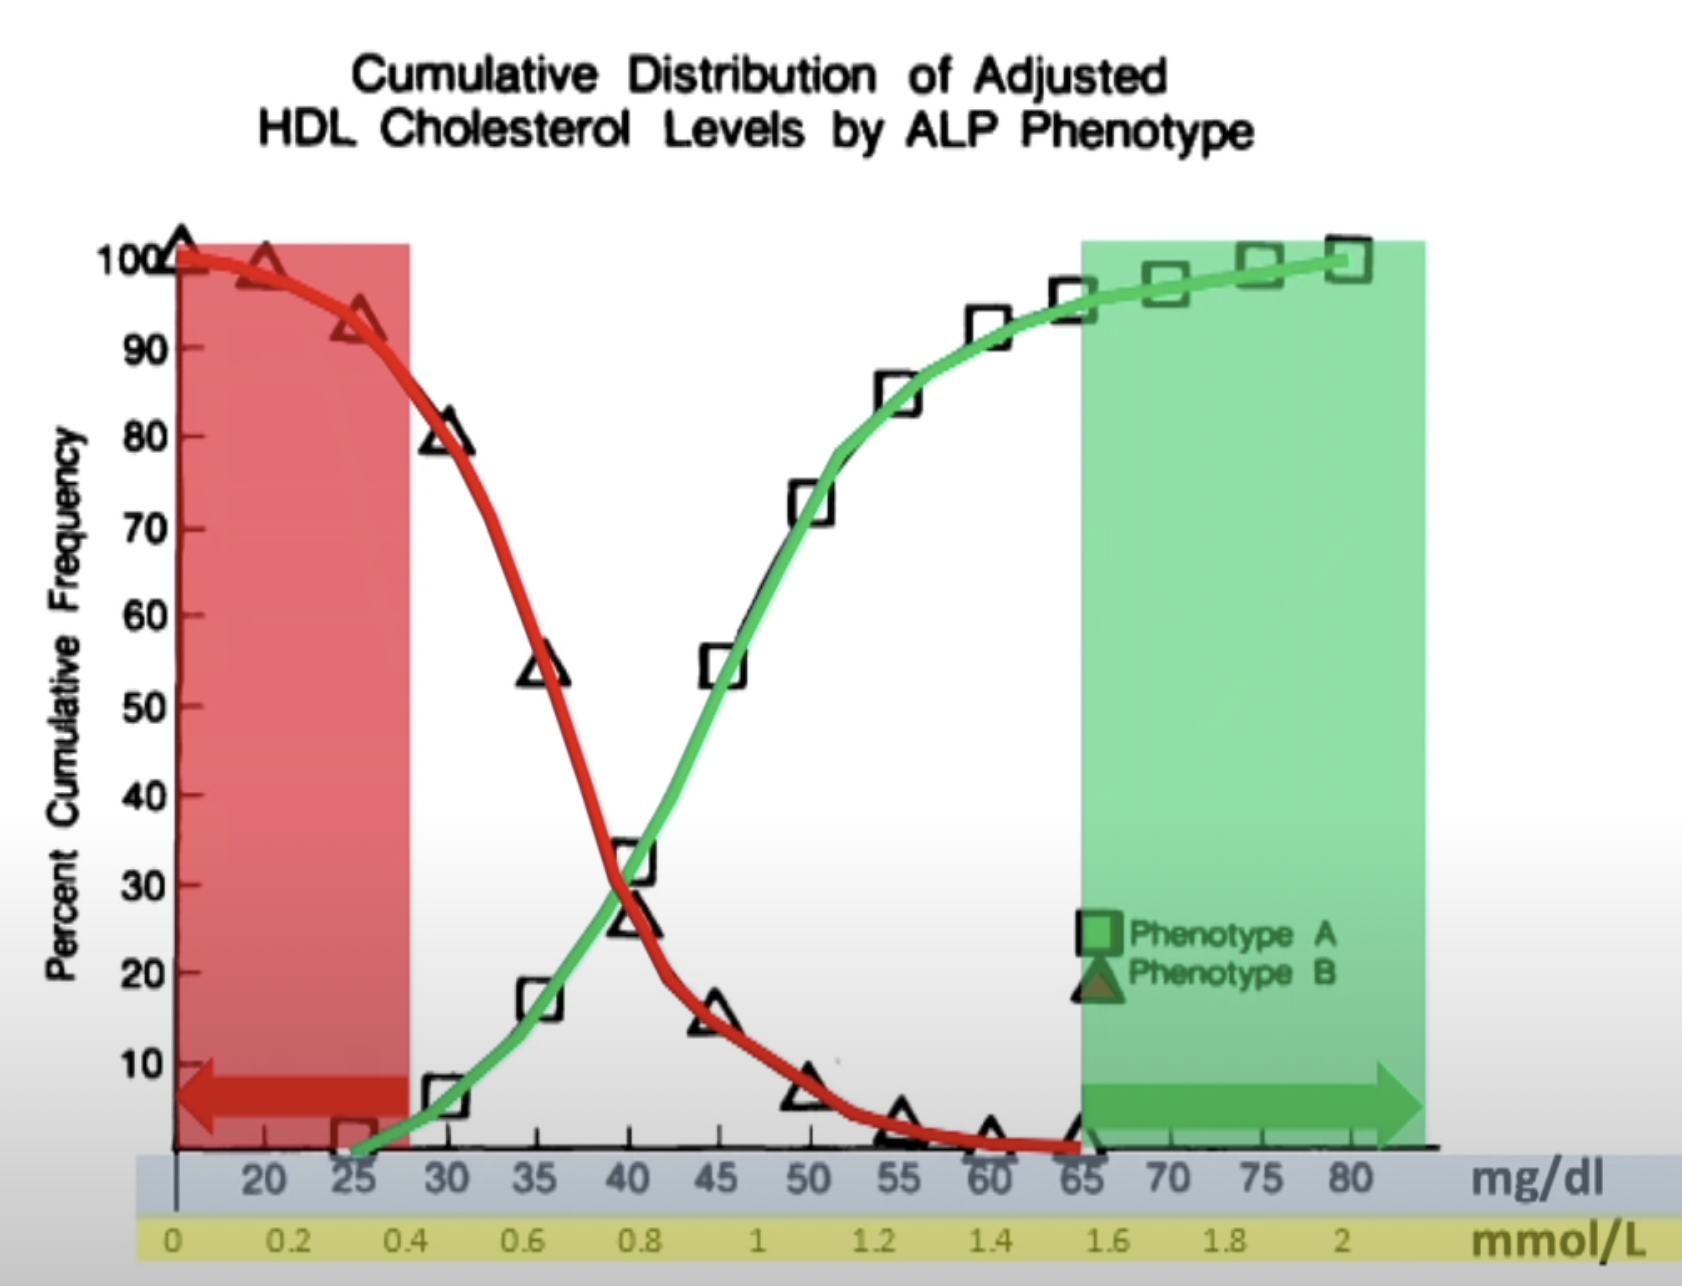 Cumulative Distribution of Adjusted HDL Cholesterol LEvels by ALP Phenotype. Austin, M.A., King, M.C., Vranizan, K.M., & Krauss, R. M. (1990). Atherogenic lipoprotein phenotype. A proposed genetic marker for coronary heart disease risk. Circulation, 82(2), 495-506.